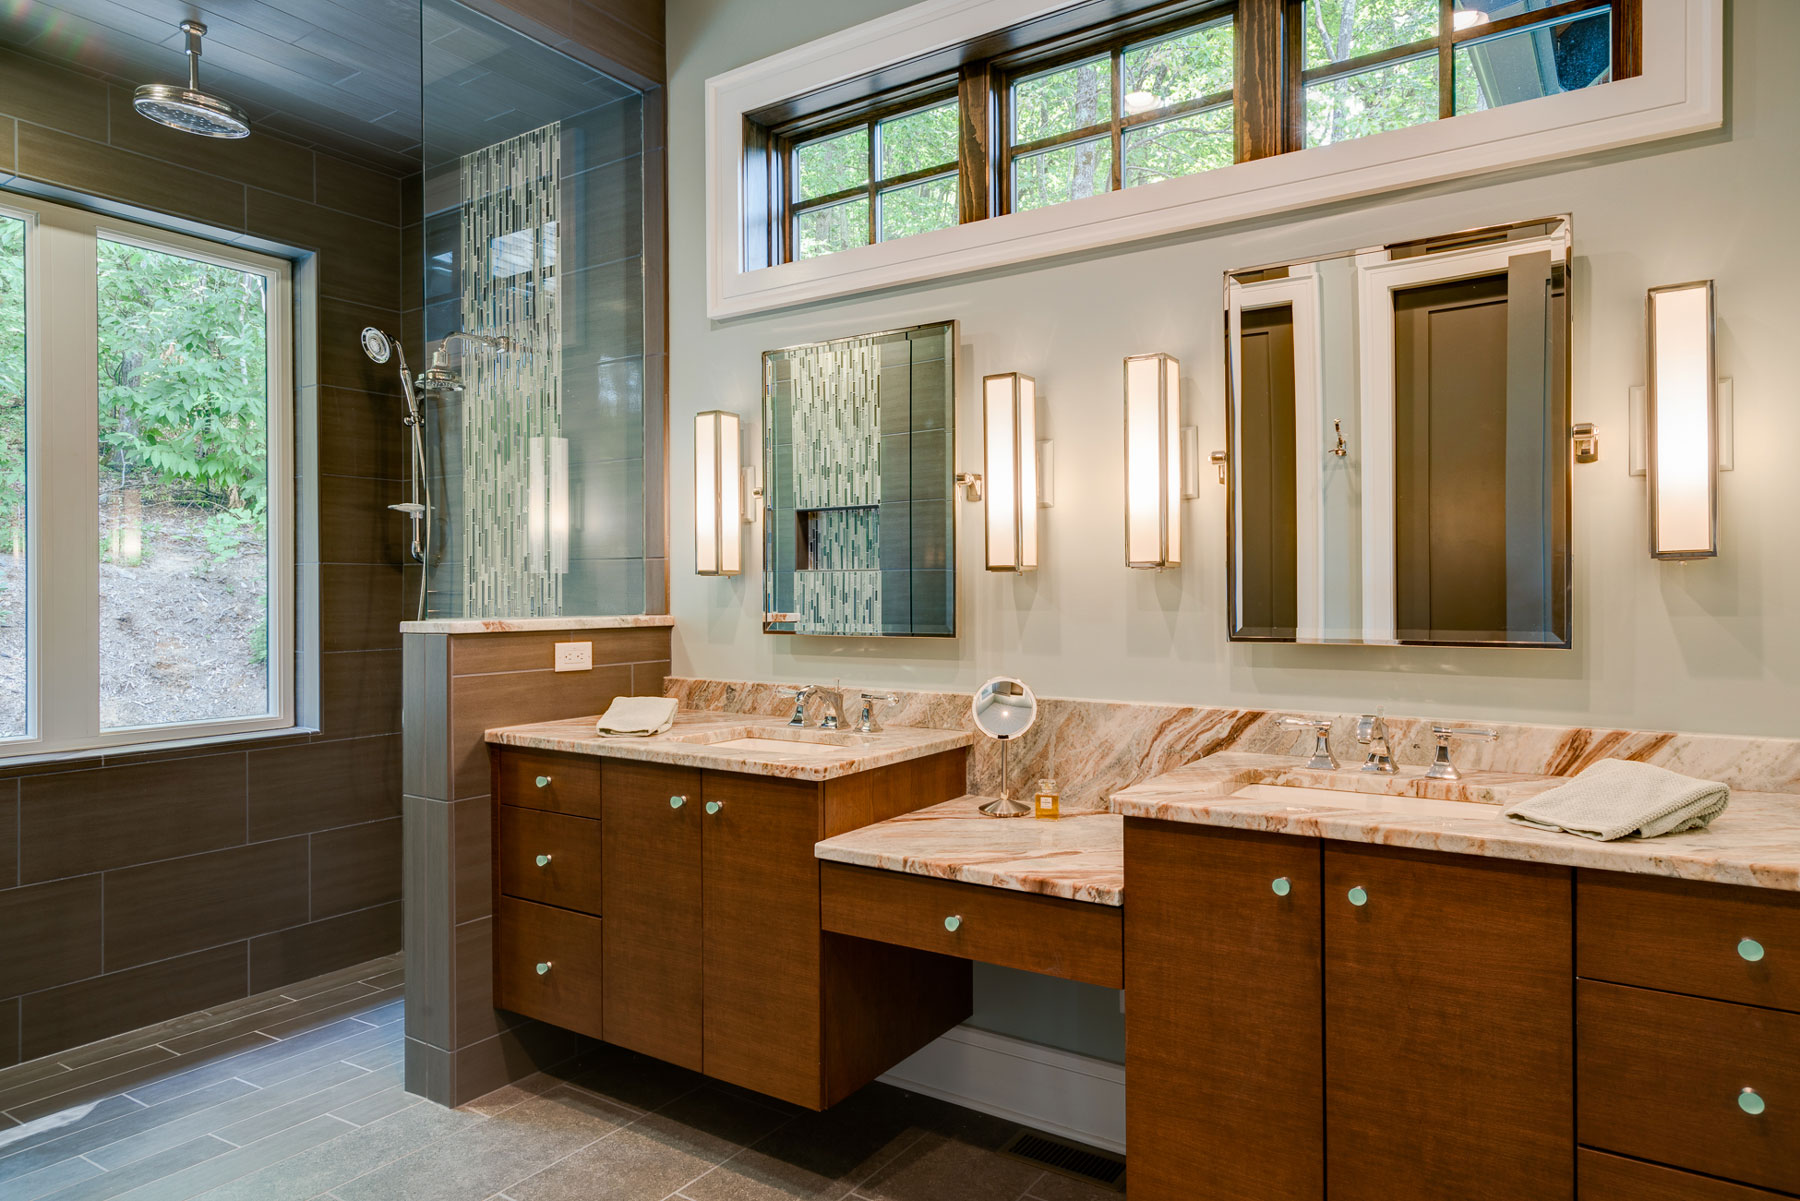 Master bath design for aging in place and retiring in the mountains